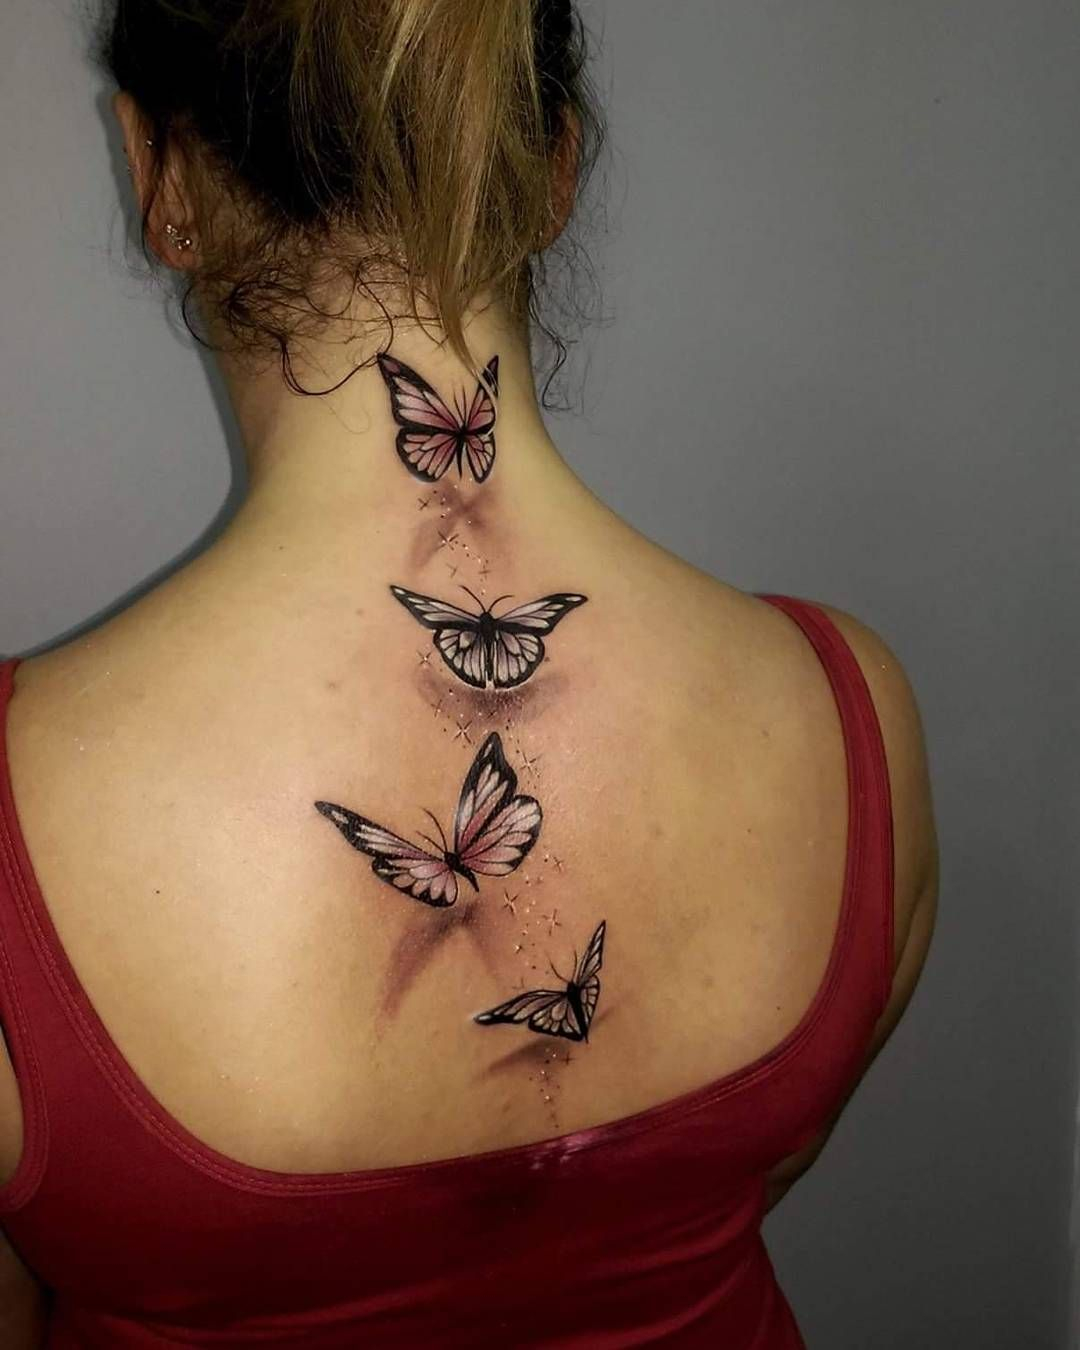 Amazing Butterfly Back Tattoo Tattoos Butte within dimensions 1080 X 1350